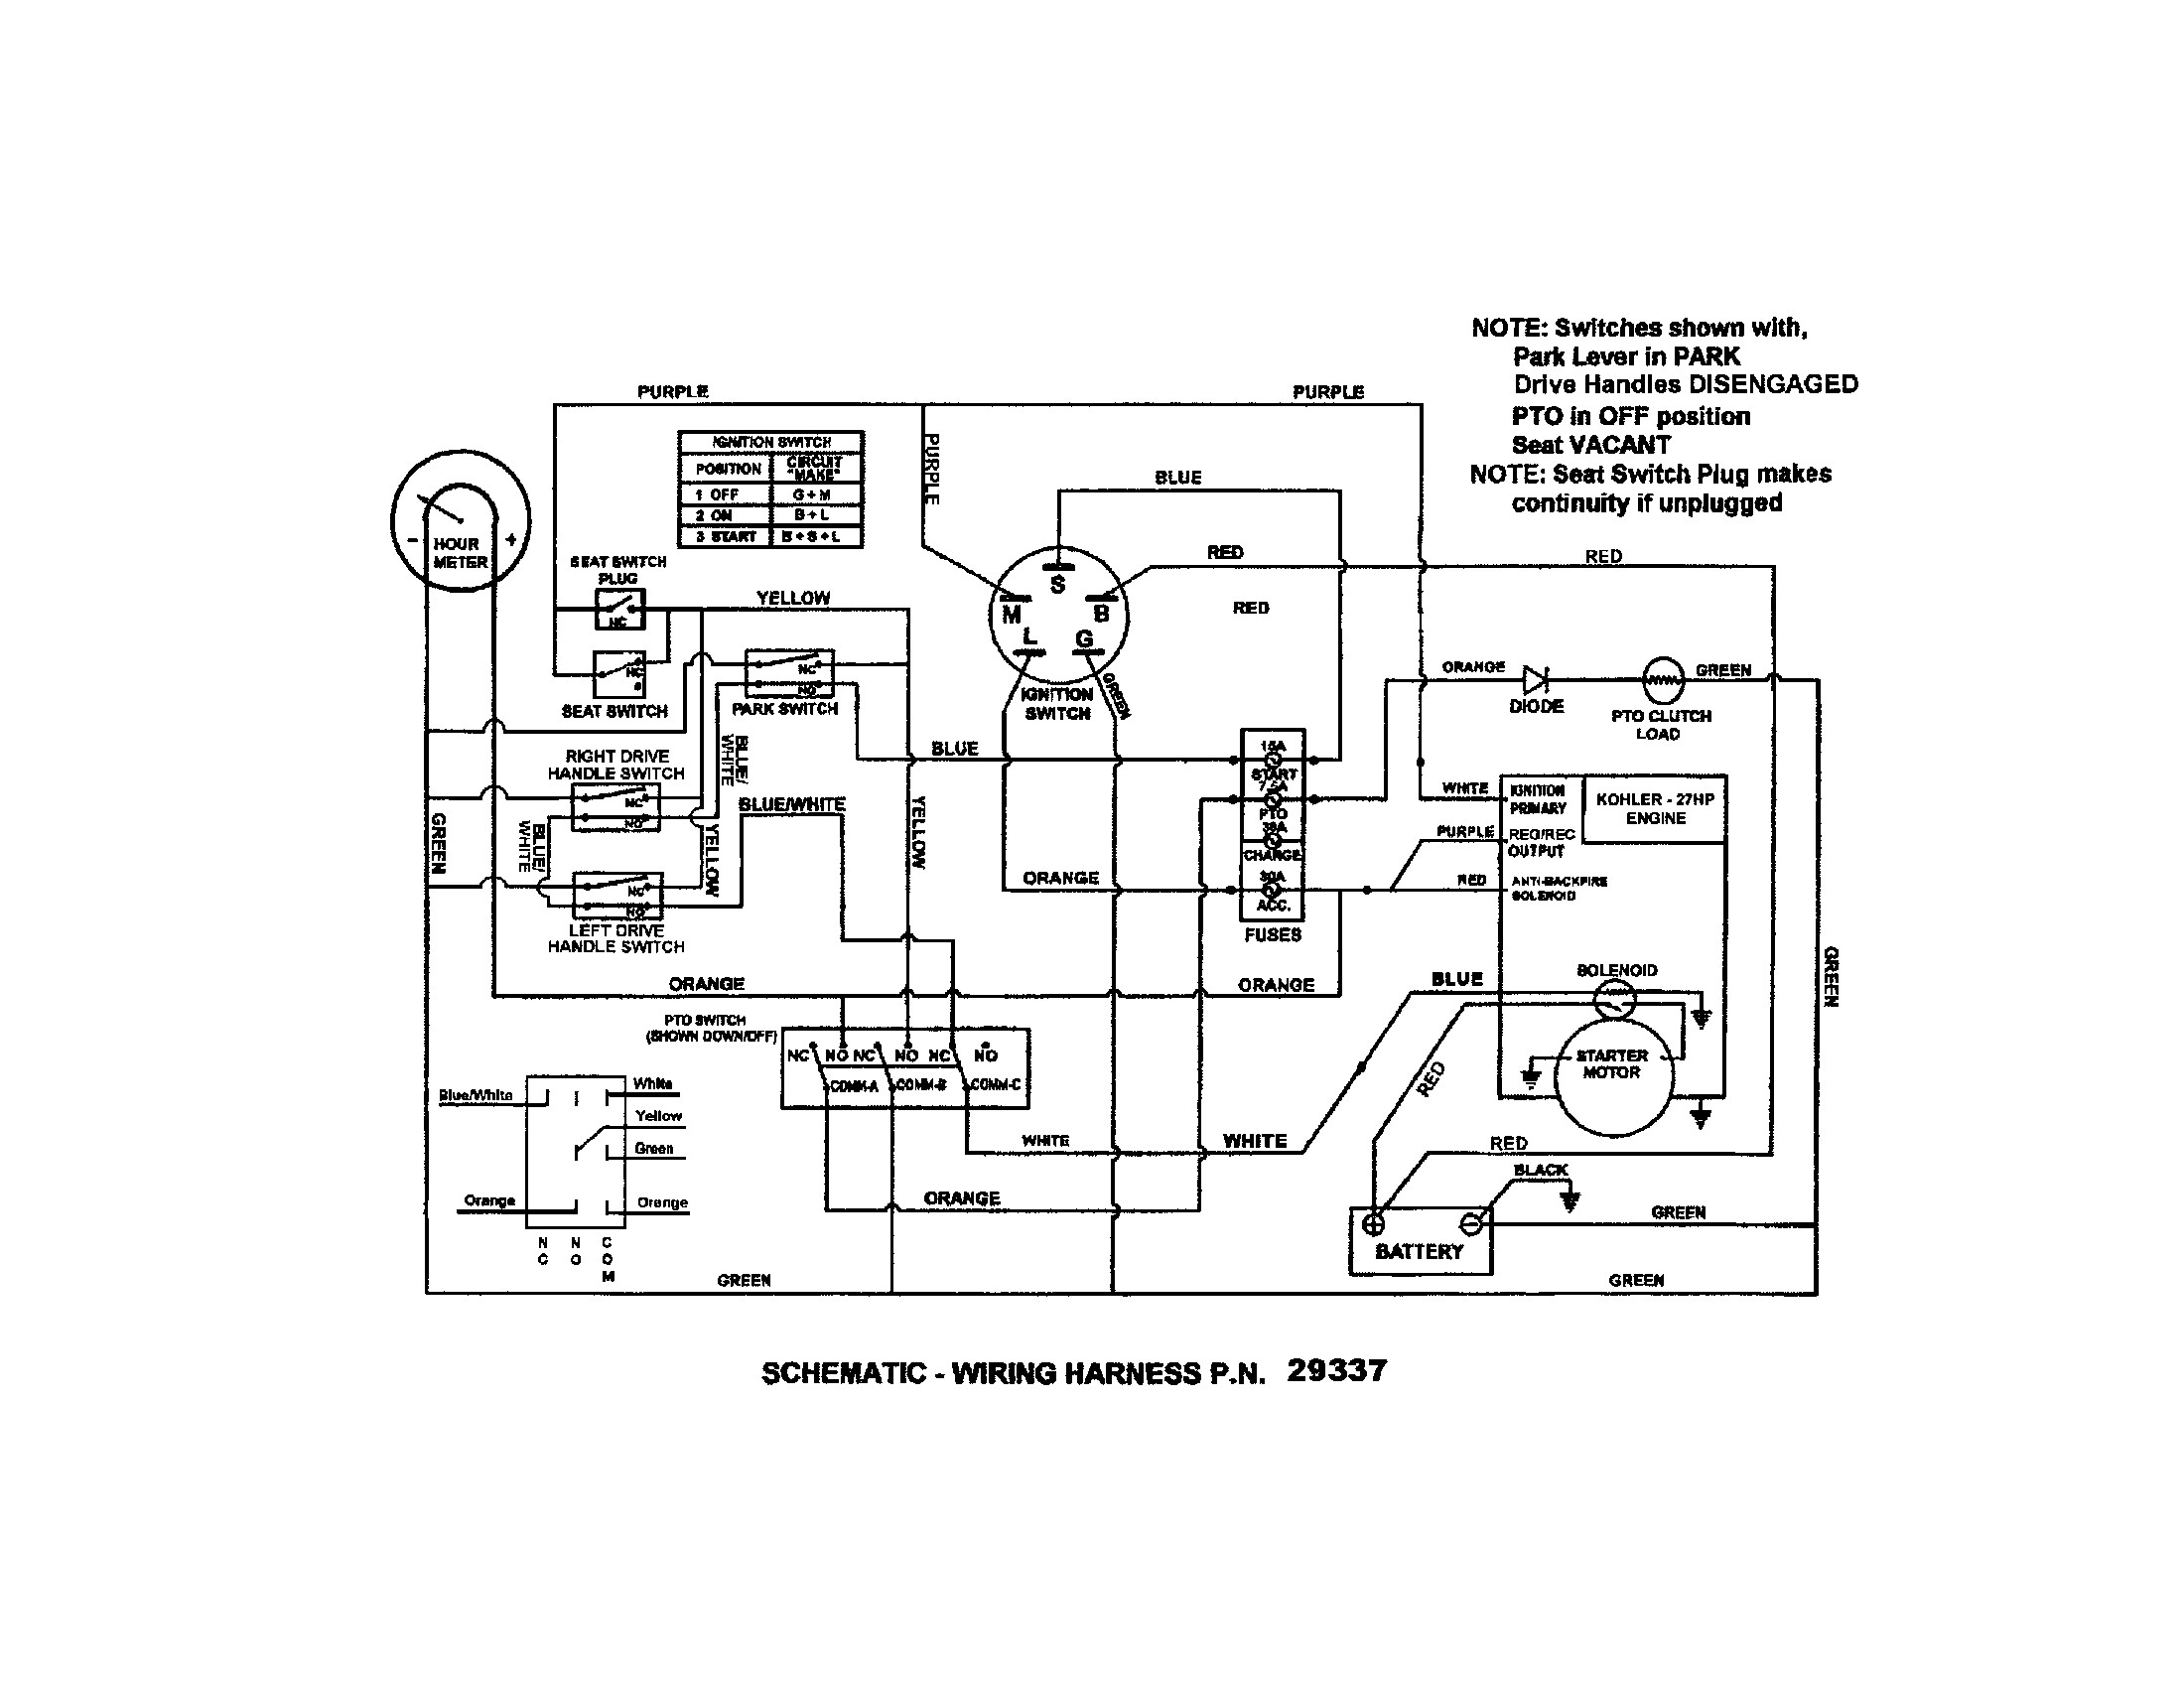 Kohler Engine Ignition Wiring Diagram Snapper Model Nzm Kwv Lawn Riding Mower Rear Engine Genuine Parts Of Kohler Engine Ignition Wiring Diagram Key Wiring Diagram Wiring Diagram